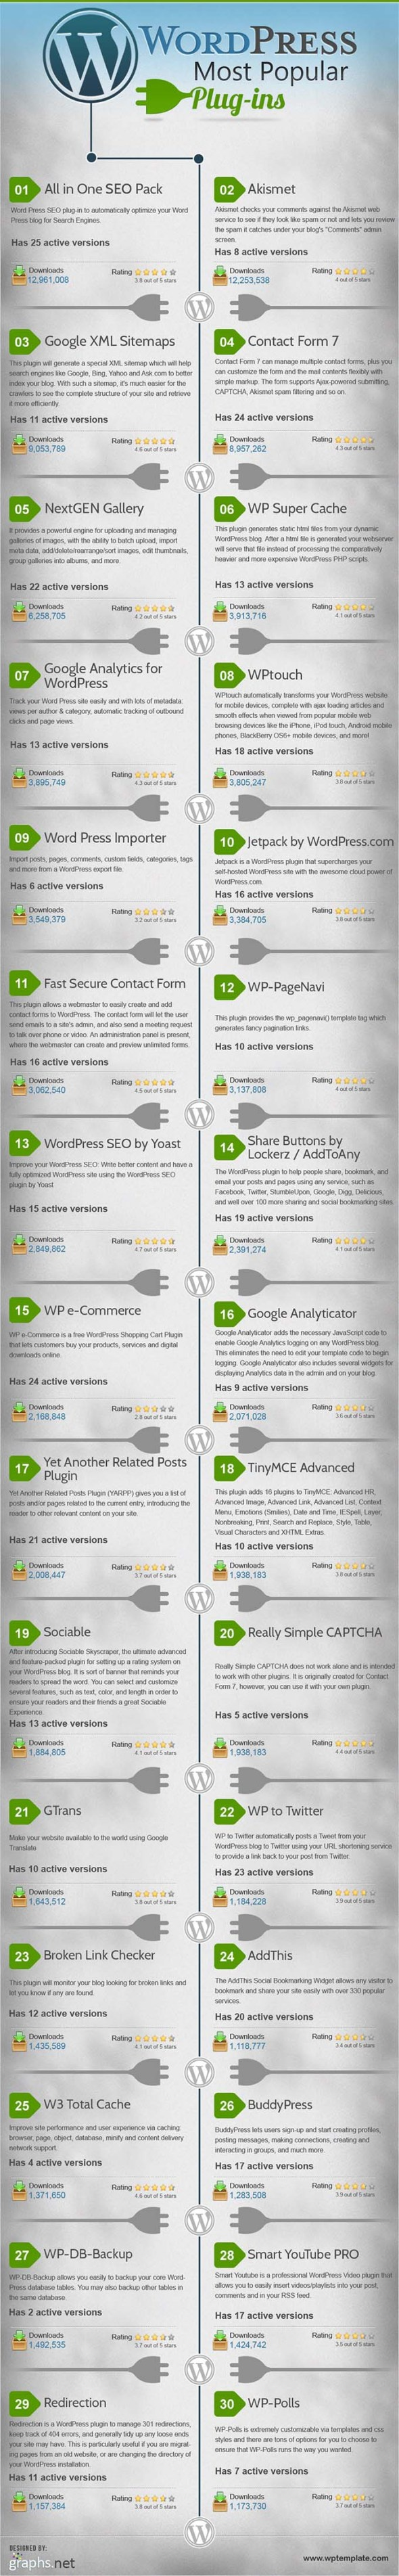 Infografica plugin wordpress